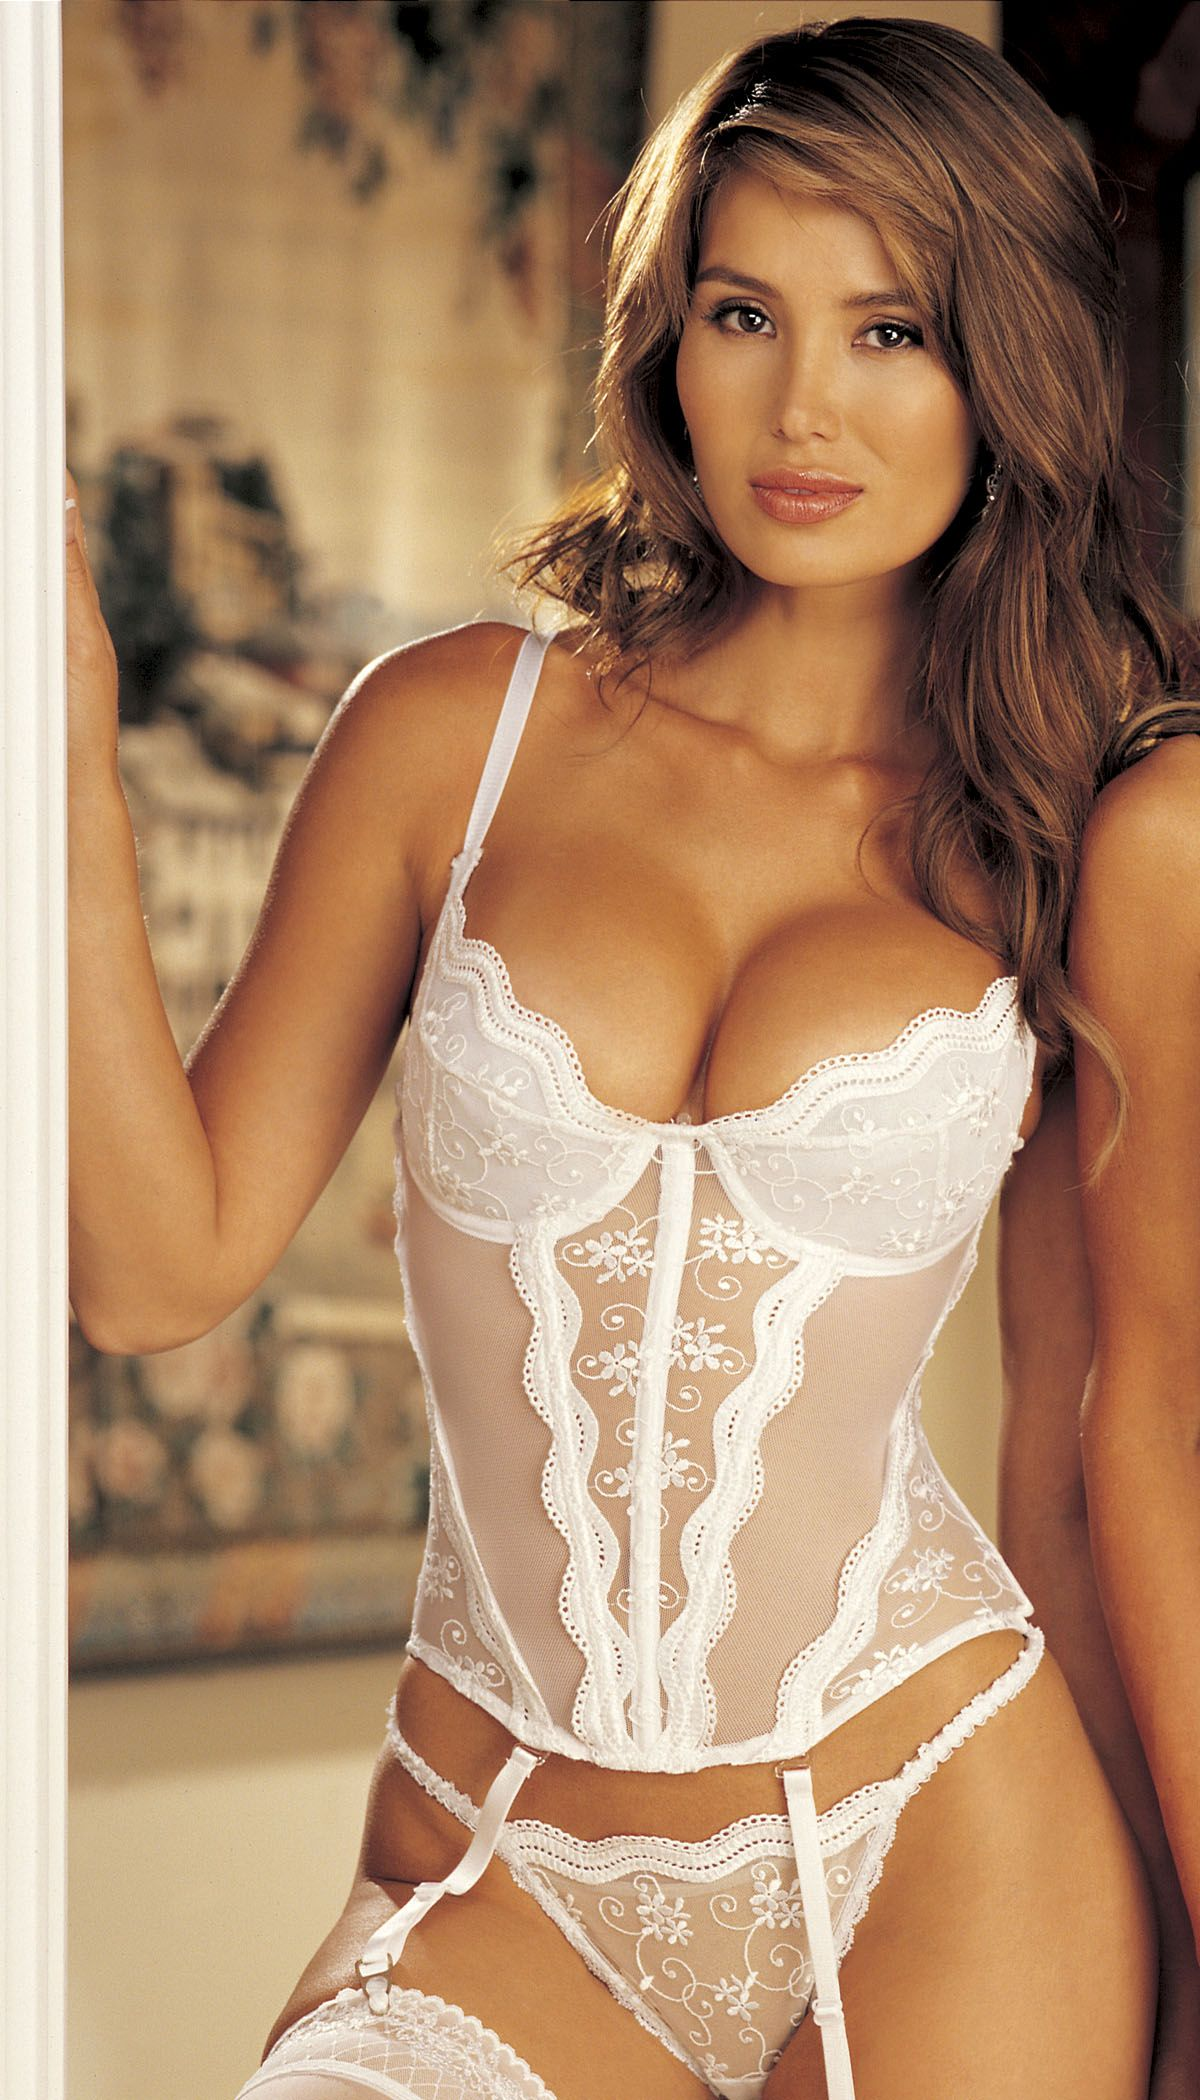 17 Best images about Bridal Lingerie on Pinterest | Sexy, Wedding ...